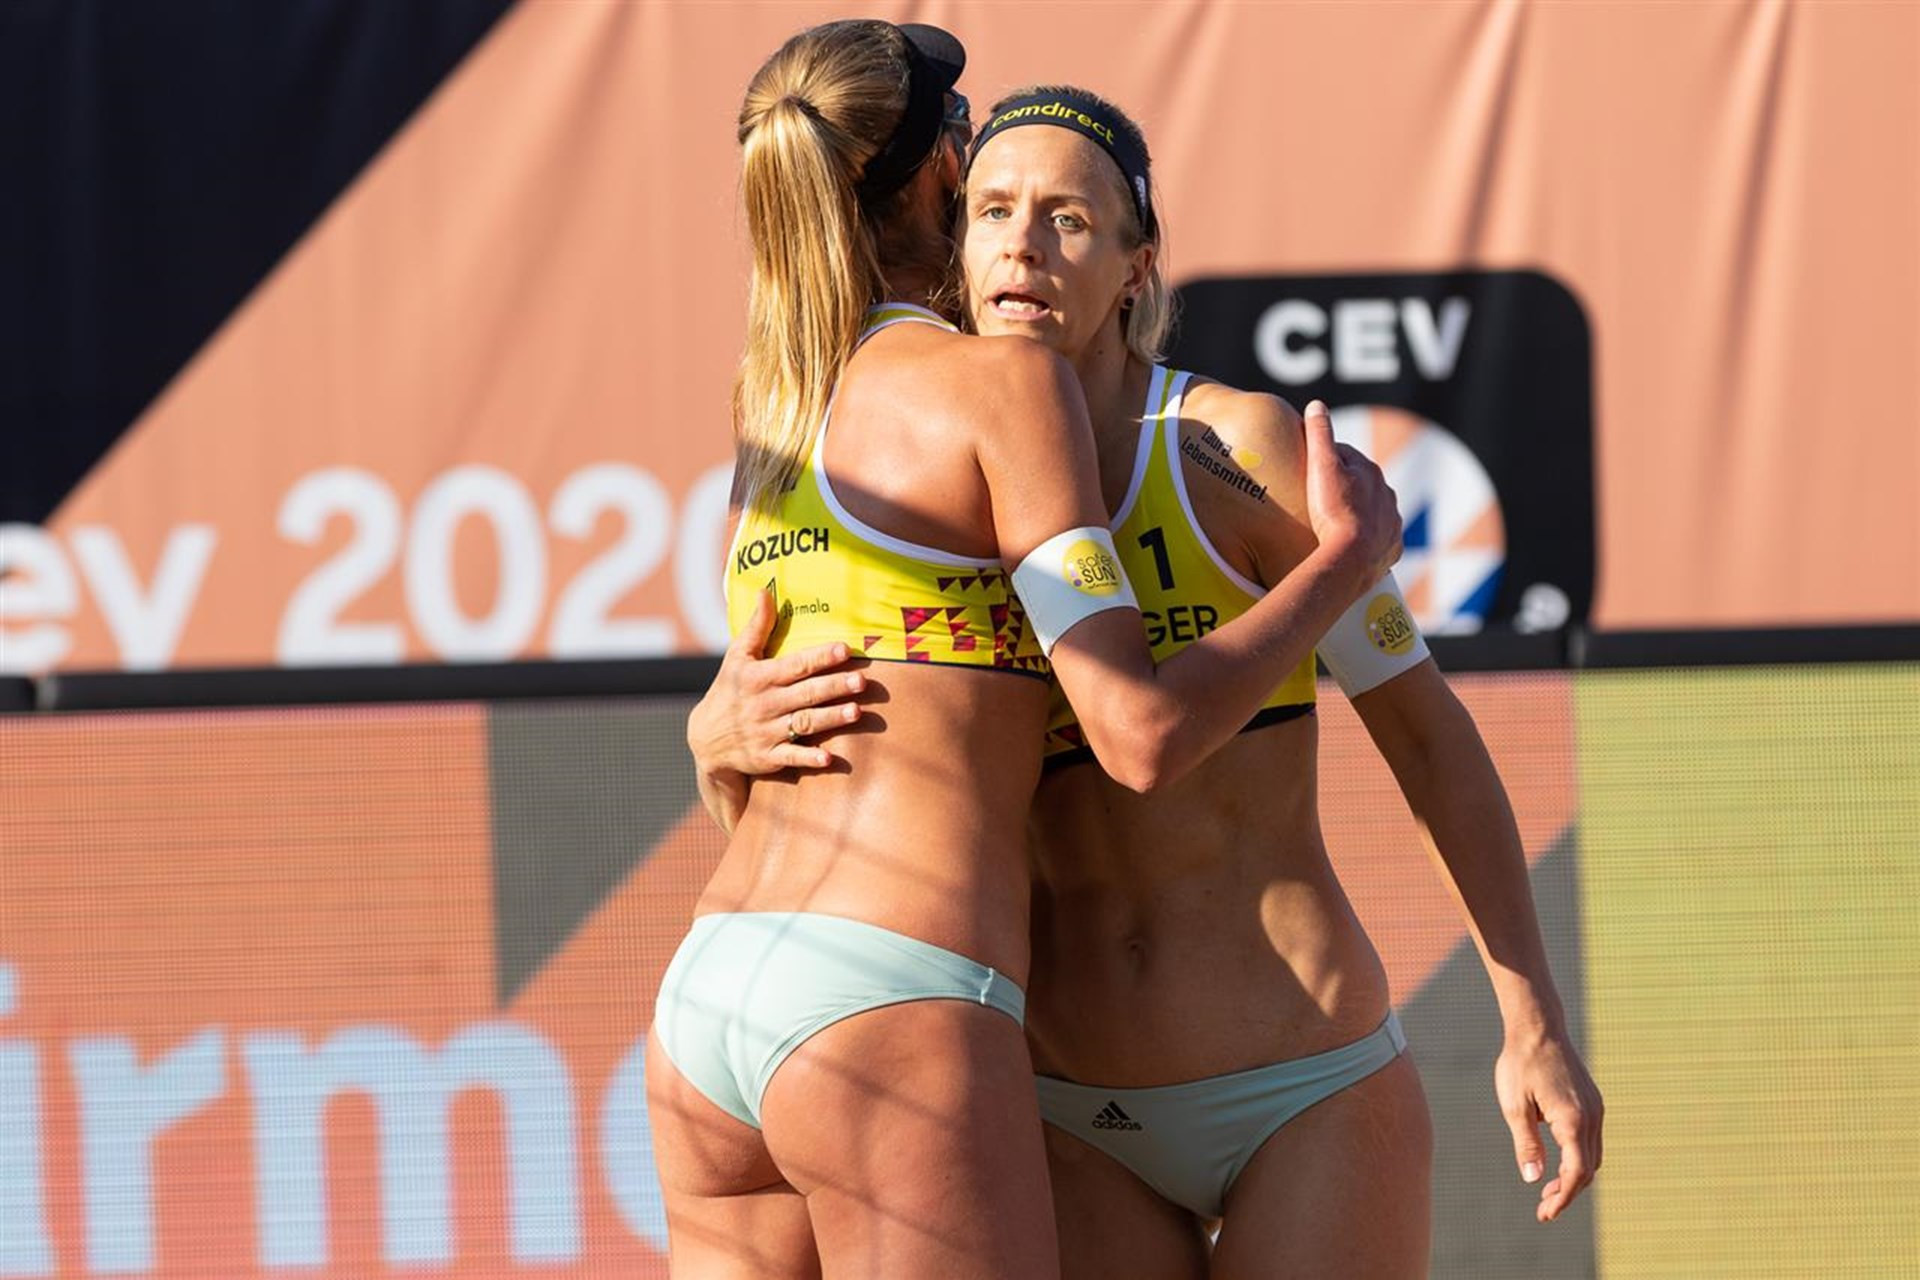 Olympic champion Ludwig and Kozuch win opener at European Beach Volleyball Championships